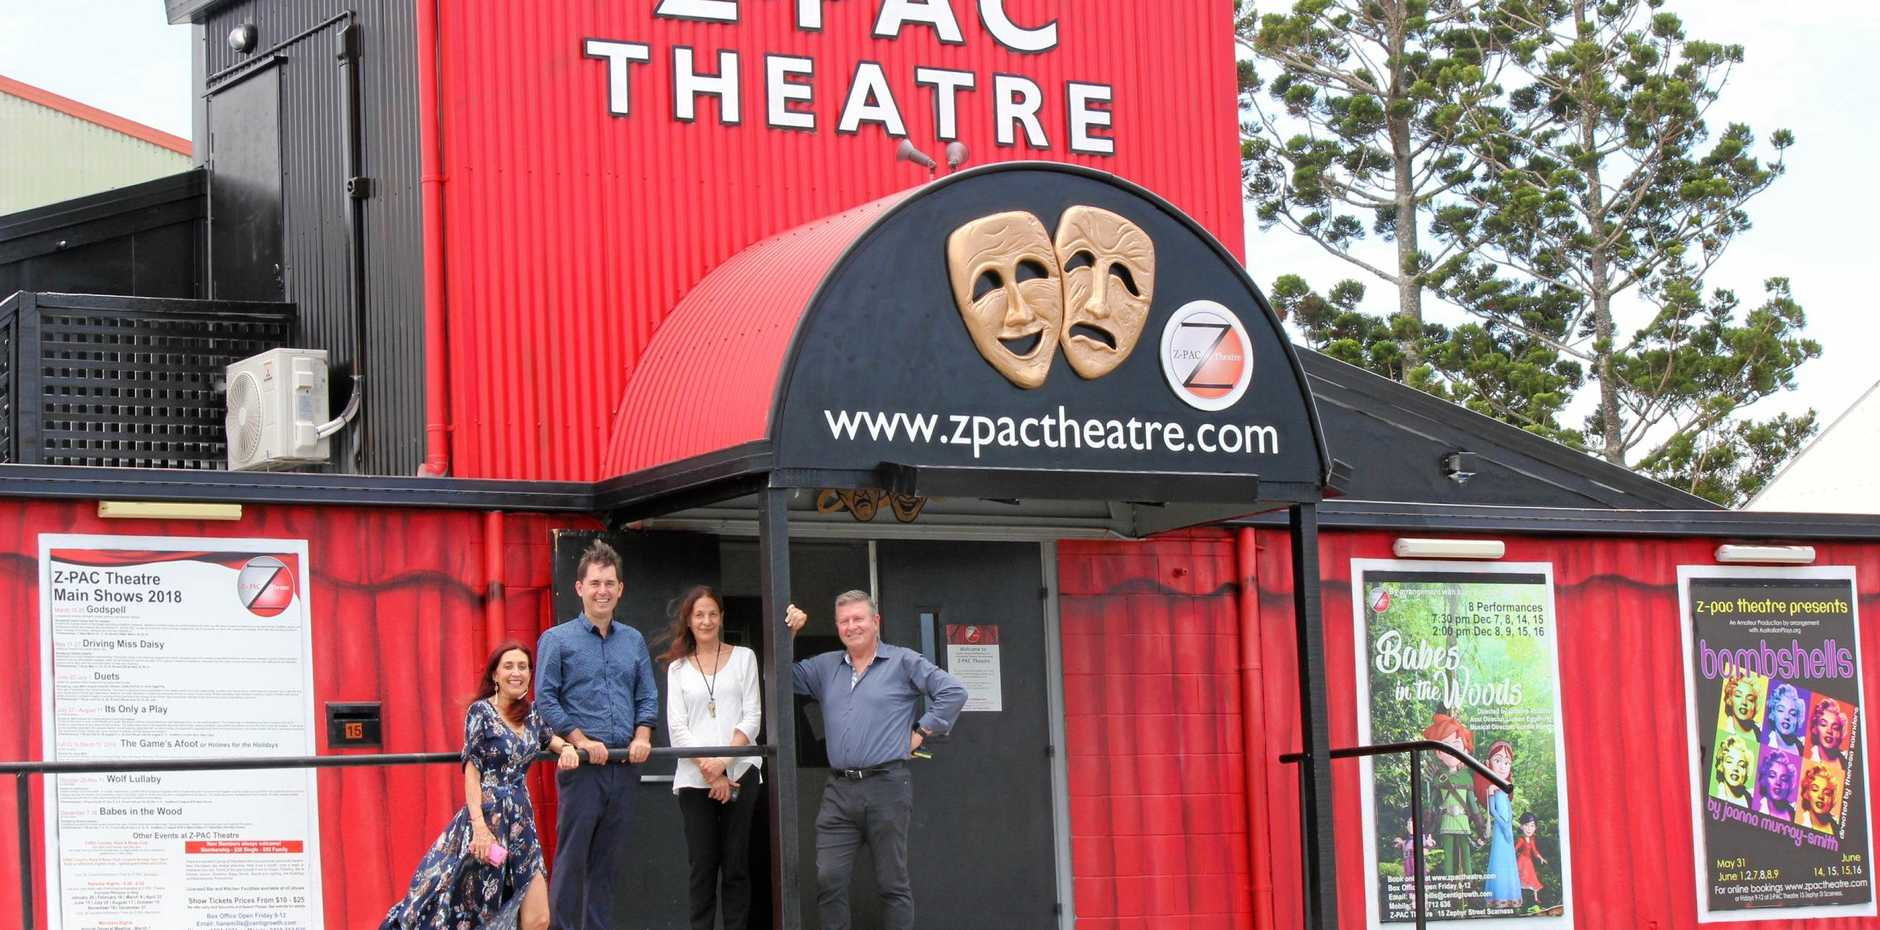 LOOKING GOOD: Z-PAC Theatre has a new lease of life after the facade was recently painted. Mayor George Seymour, president Liane Mills, secretary Steve Dixon and prop manager and artist Katrin Chrysaphis are proud to present the new look to the Fraser Coast community.